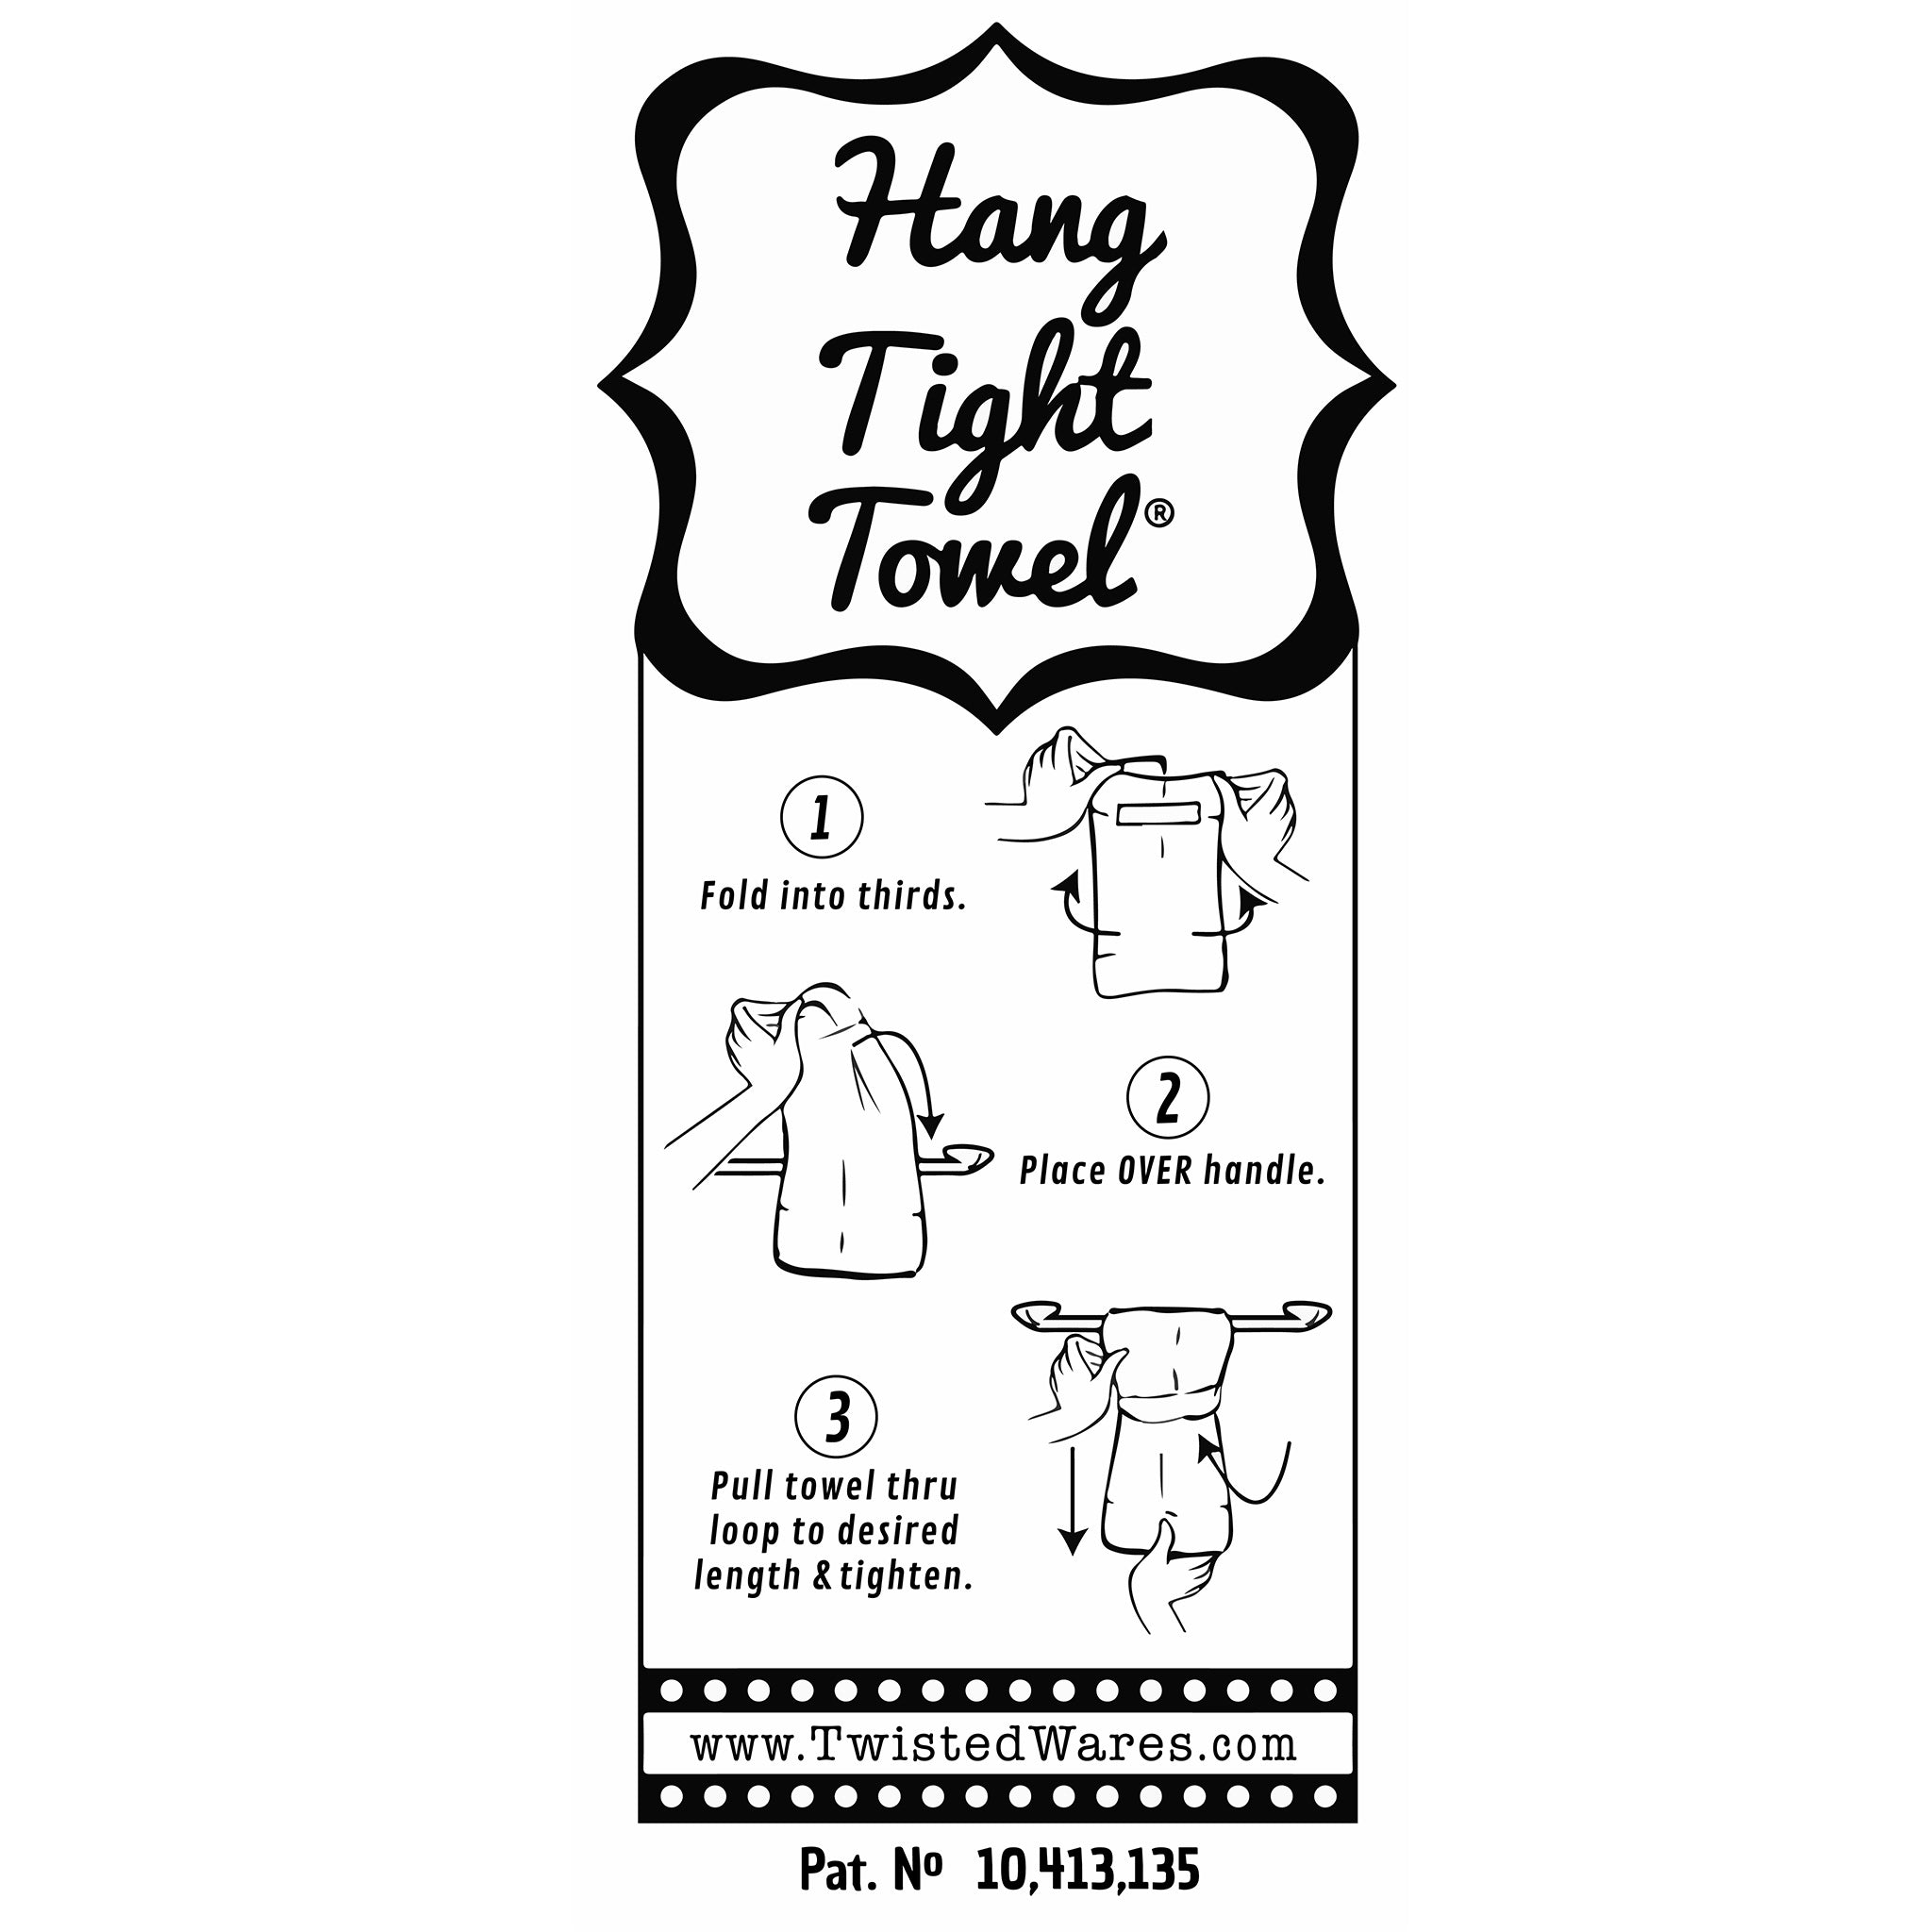 For Fucks Sake Flour Sack Hang Tight Towel®